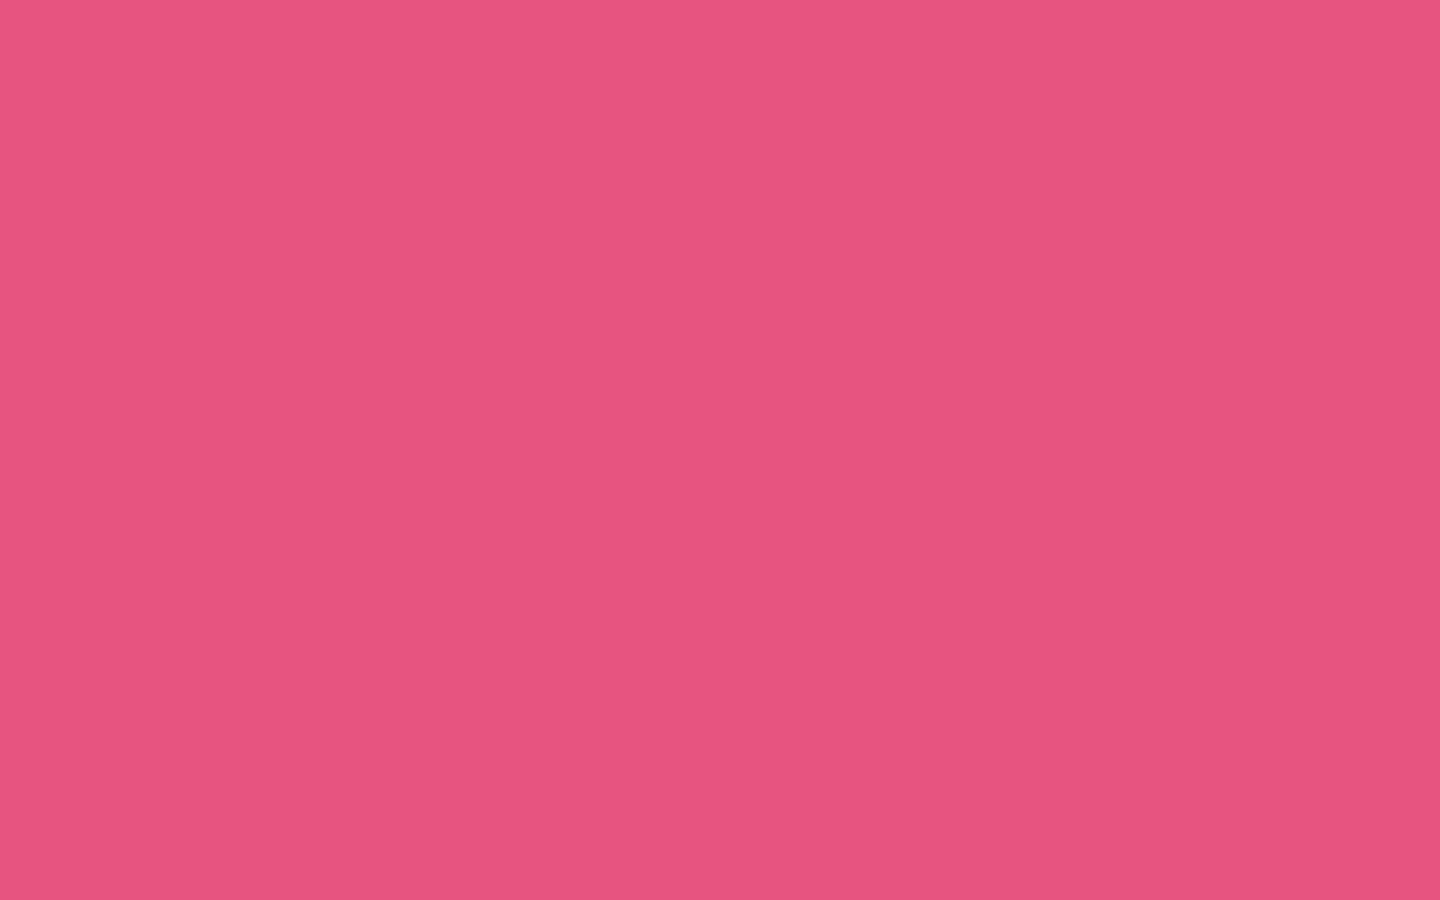 1440x900 Dark Pink Solid Color Background